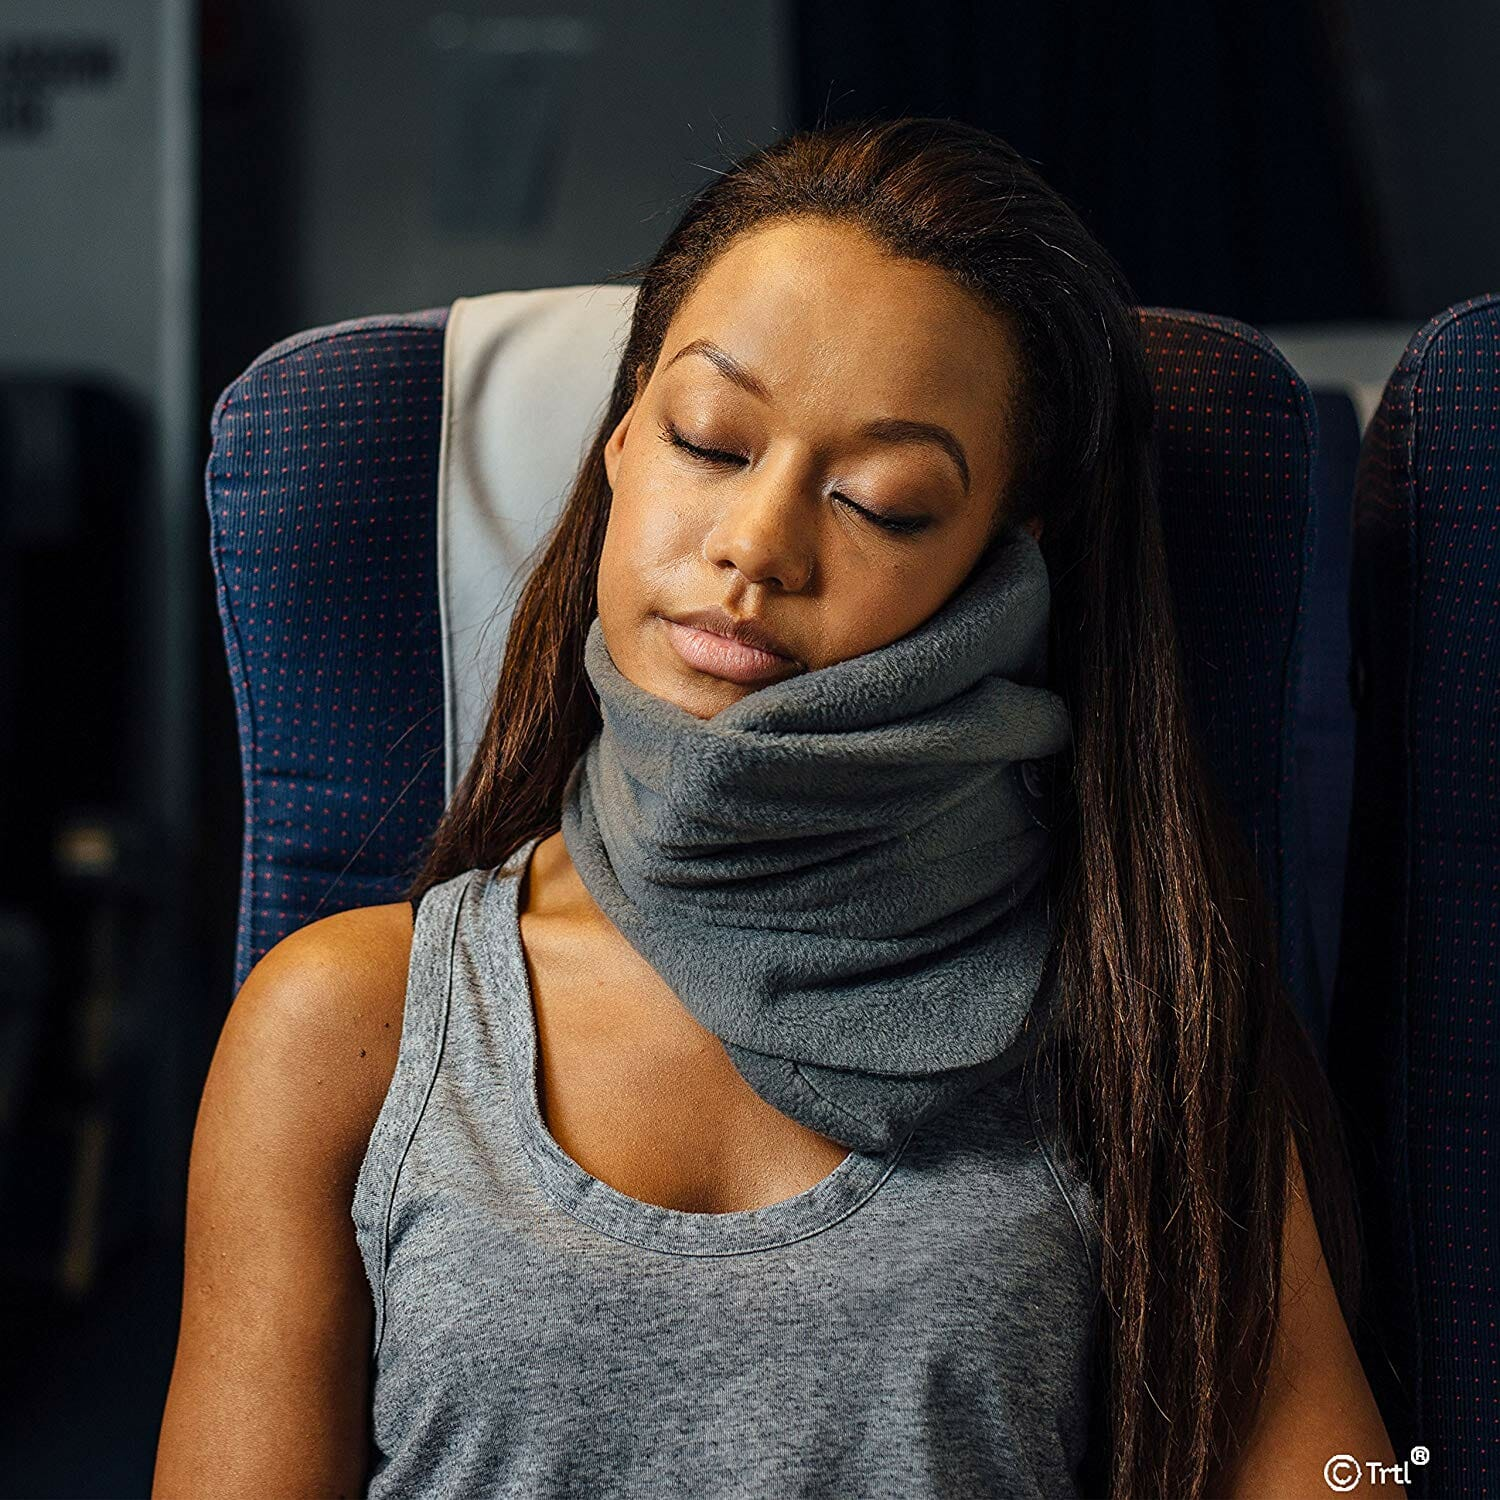 travel-gifts-for-her-neck-pillow